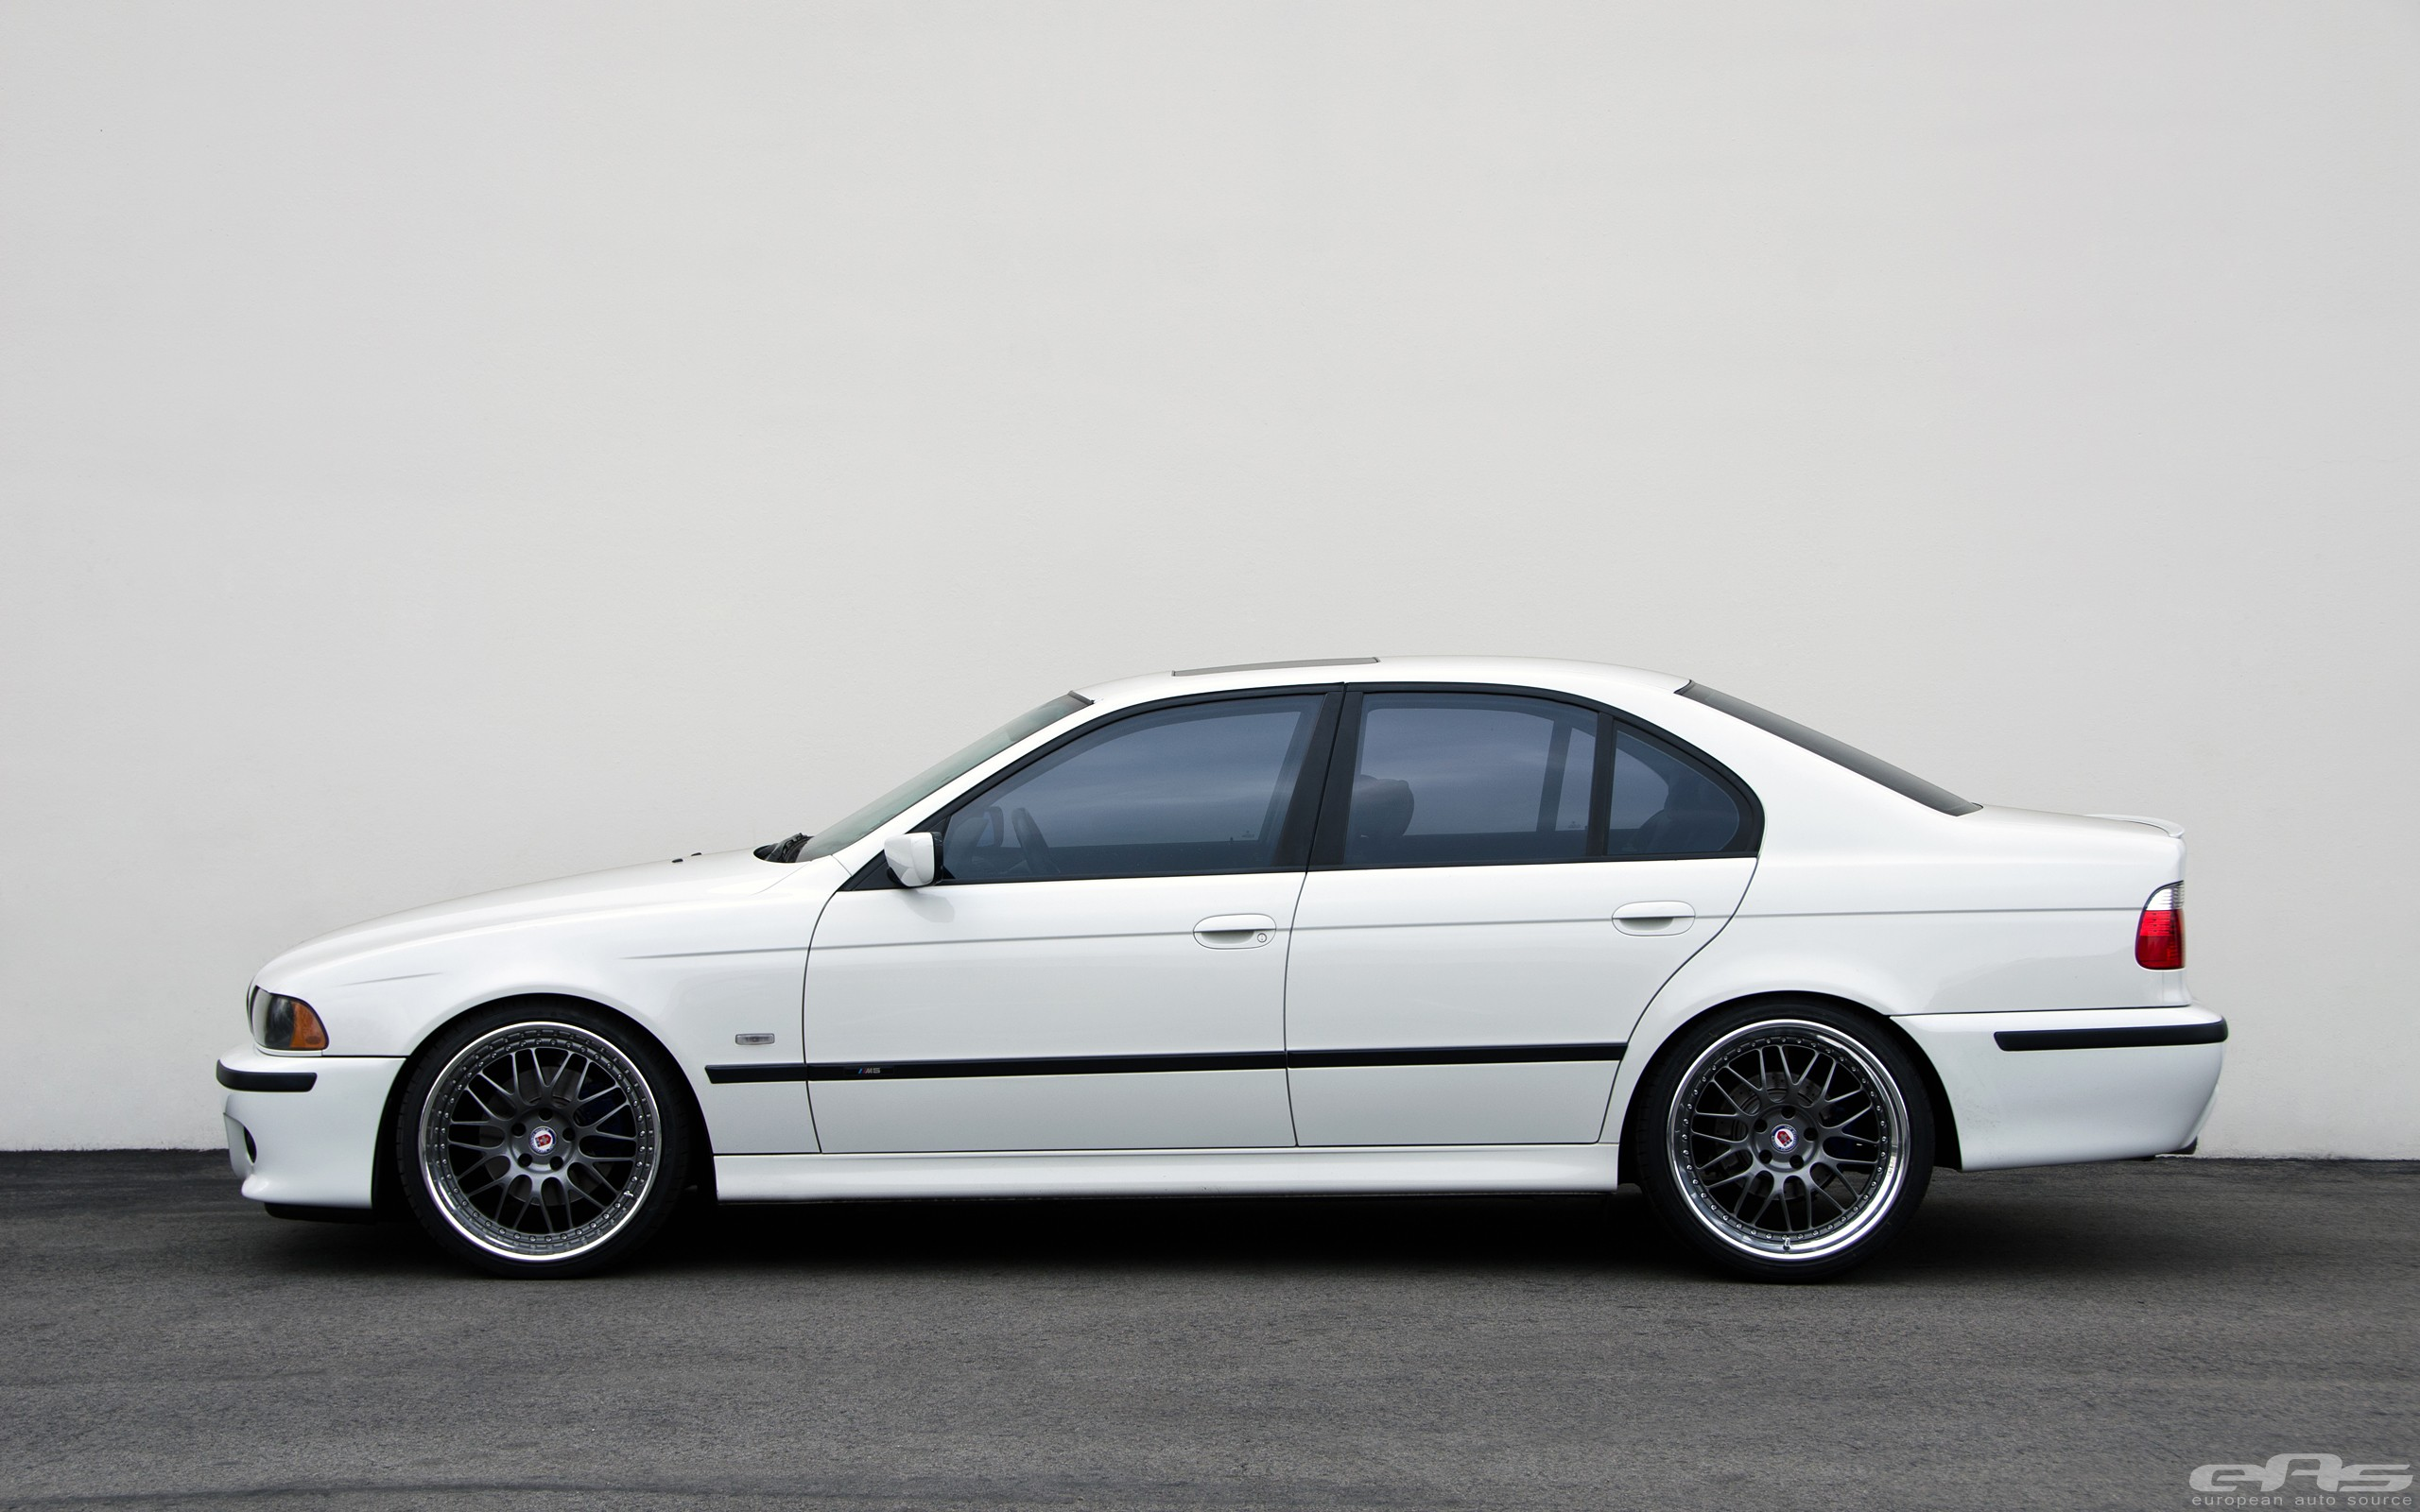 Ford Truck Hd Wallpaper Bmw E39 530i Gets Lower At Eas Still Looks Good